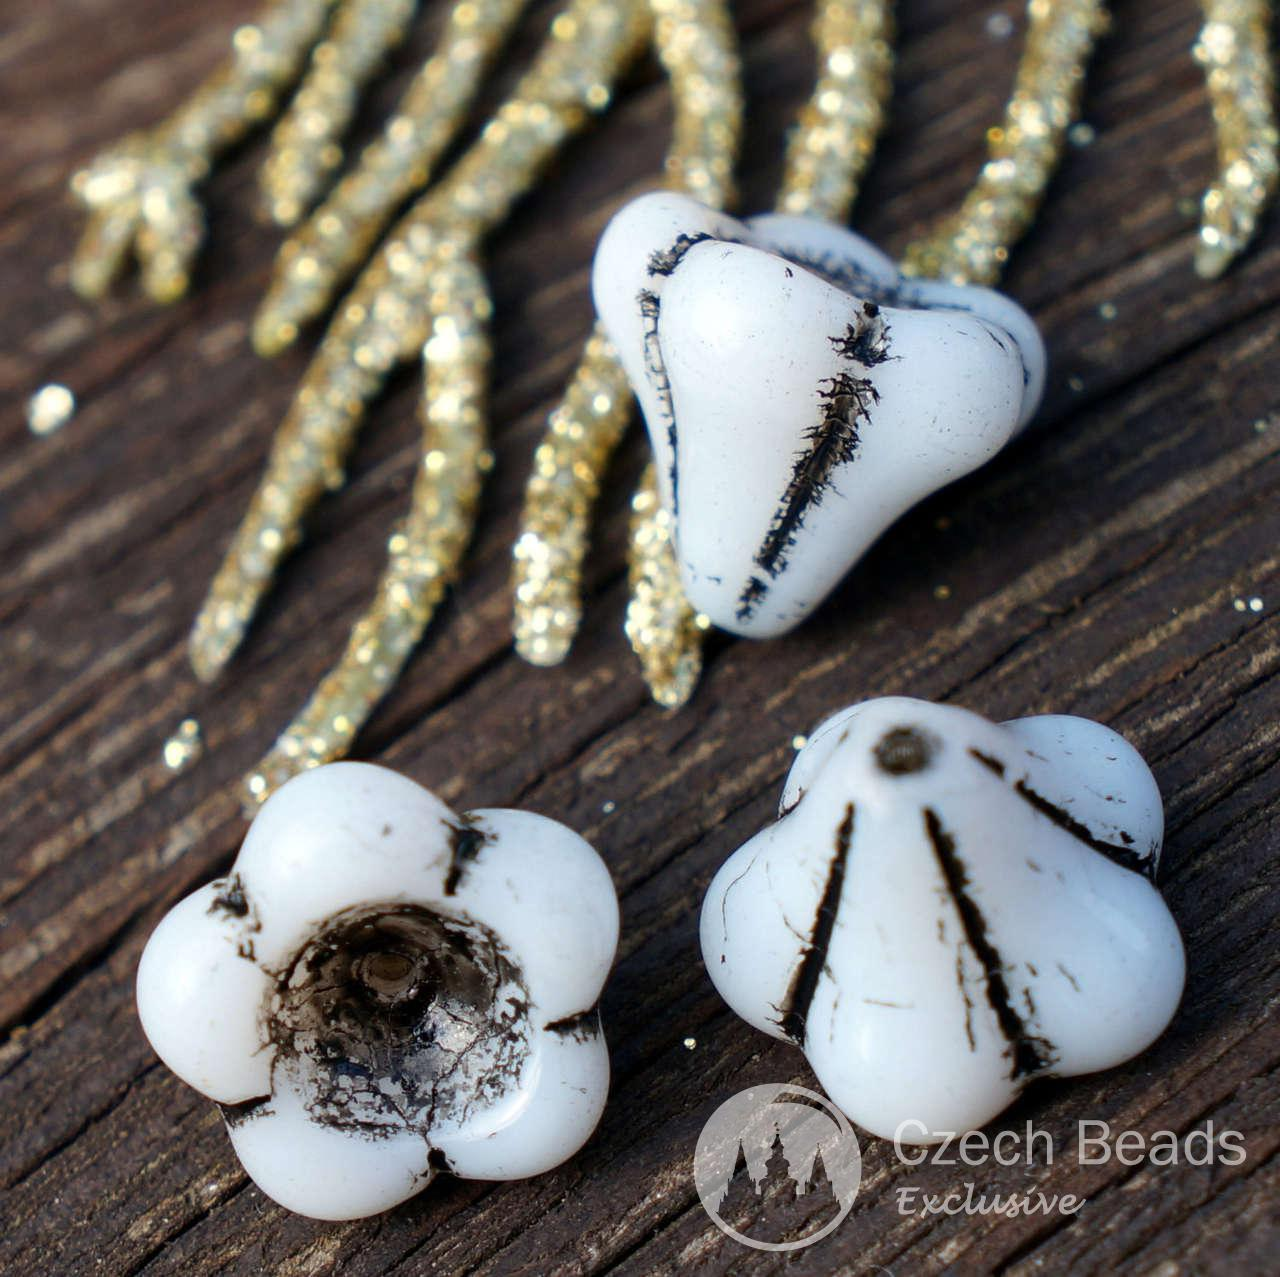 Large Black White Bell Flower Czech Glass Beads Flower Bead Caps Bohemian Beads Glass Flower Beads Czech Flower Beads Flower Beads 12mm 6pcs